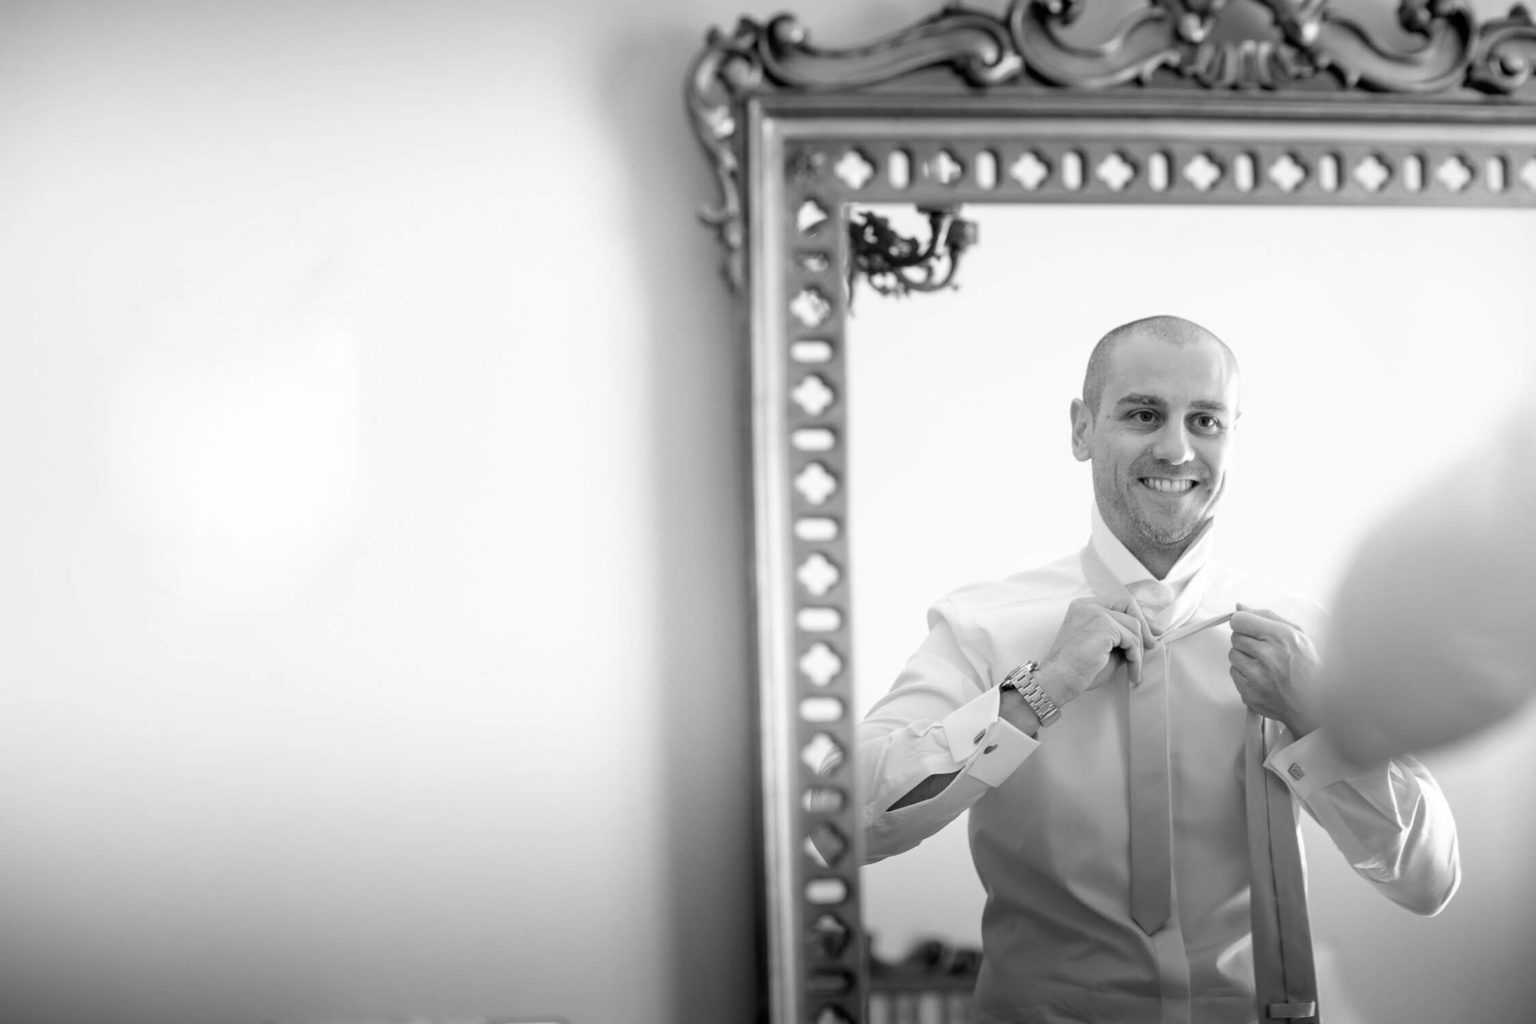 Sposo smiles in the mirror while knotting his tie, a black and white photograph by Nino Lombardo